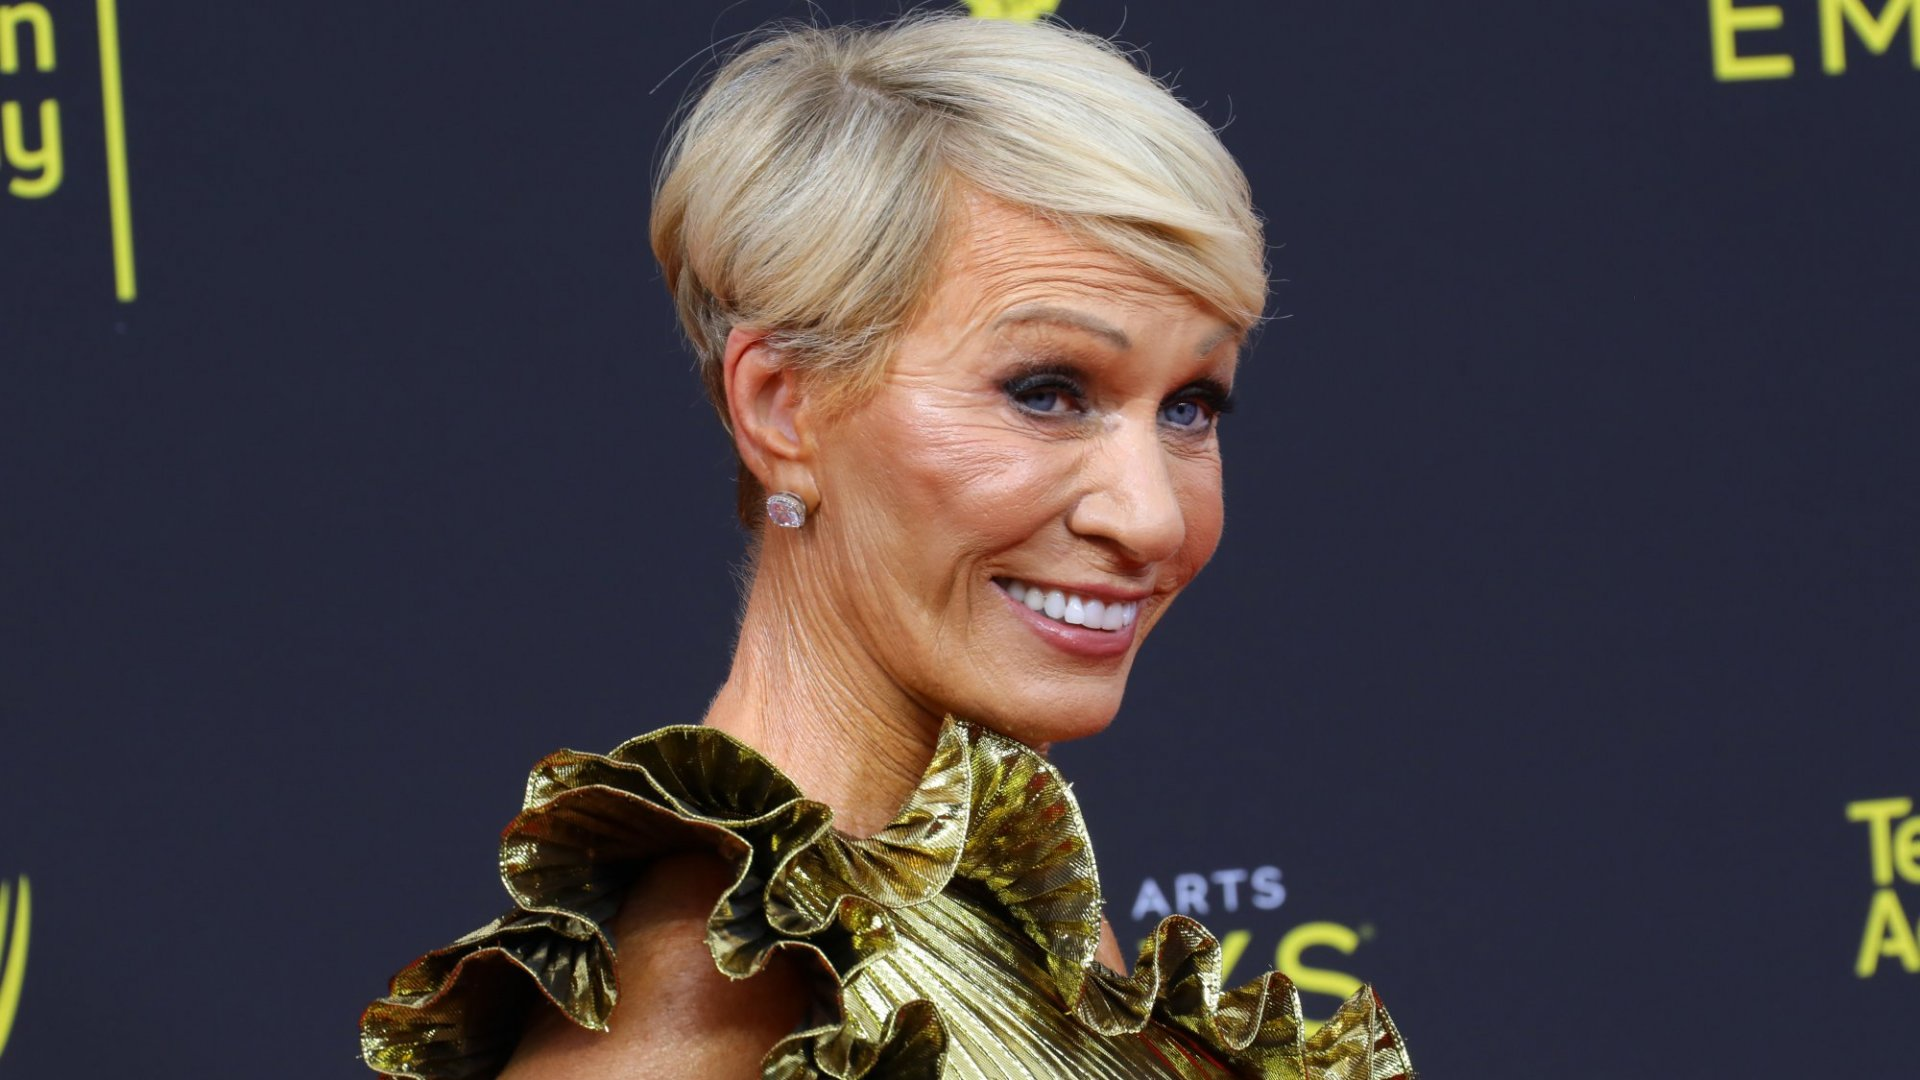 Barbara Corcoran Swears by 1 Interview Question to Weed out Bad Apples